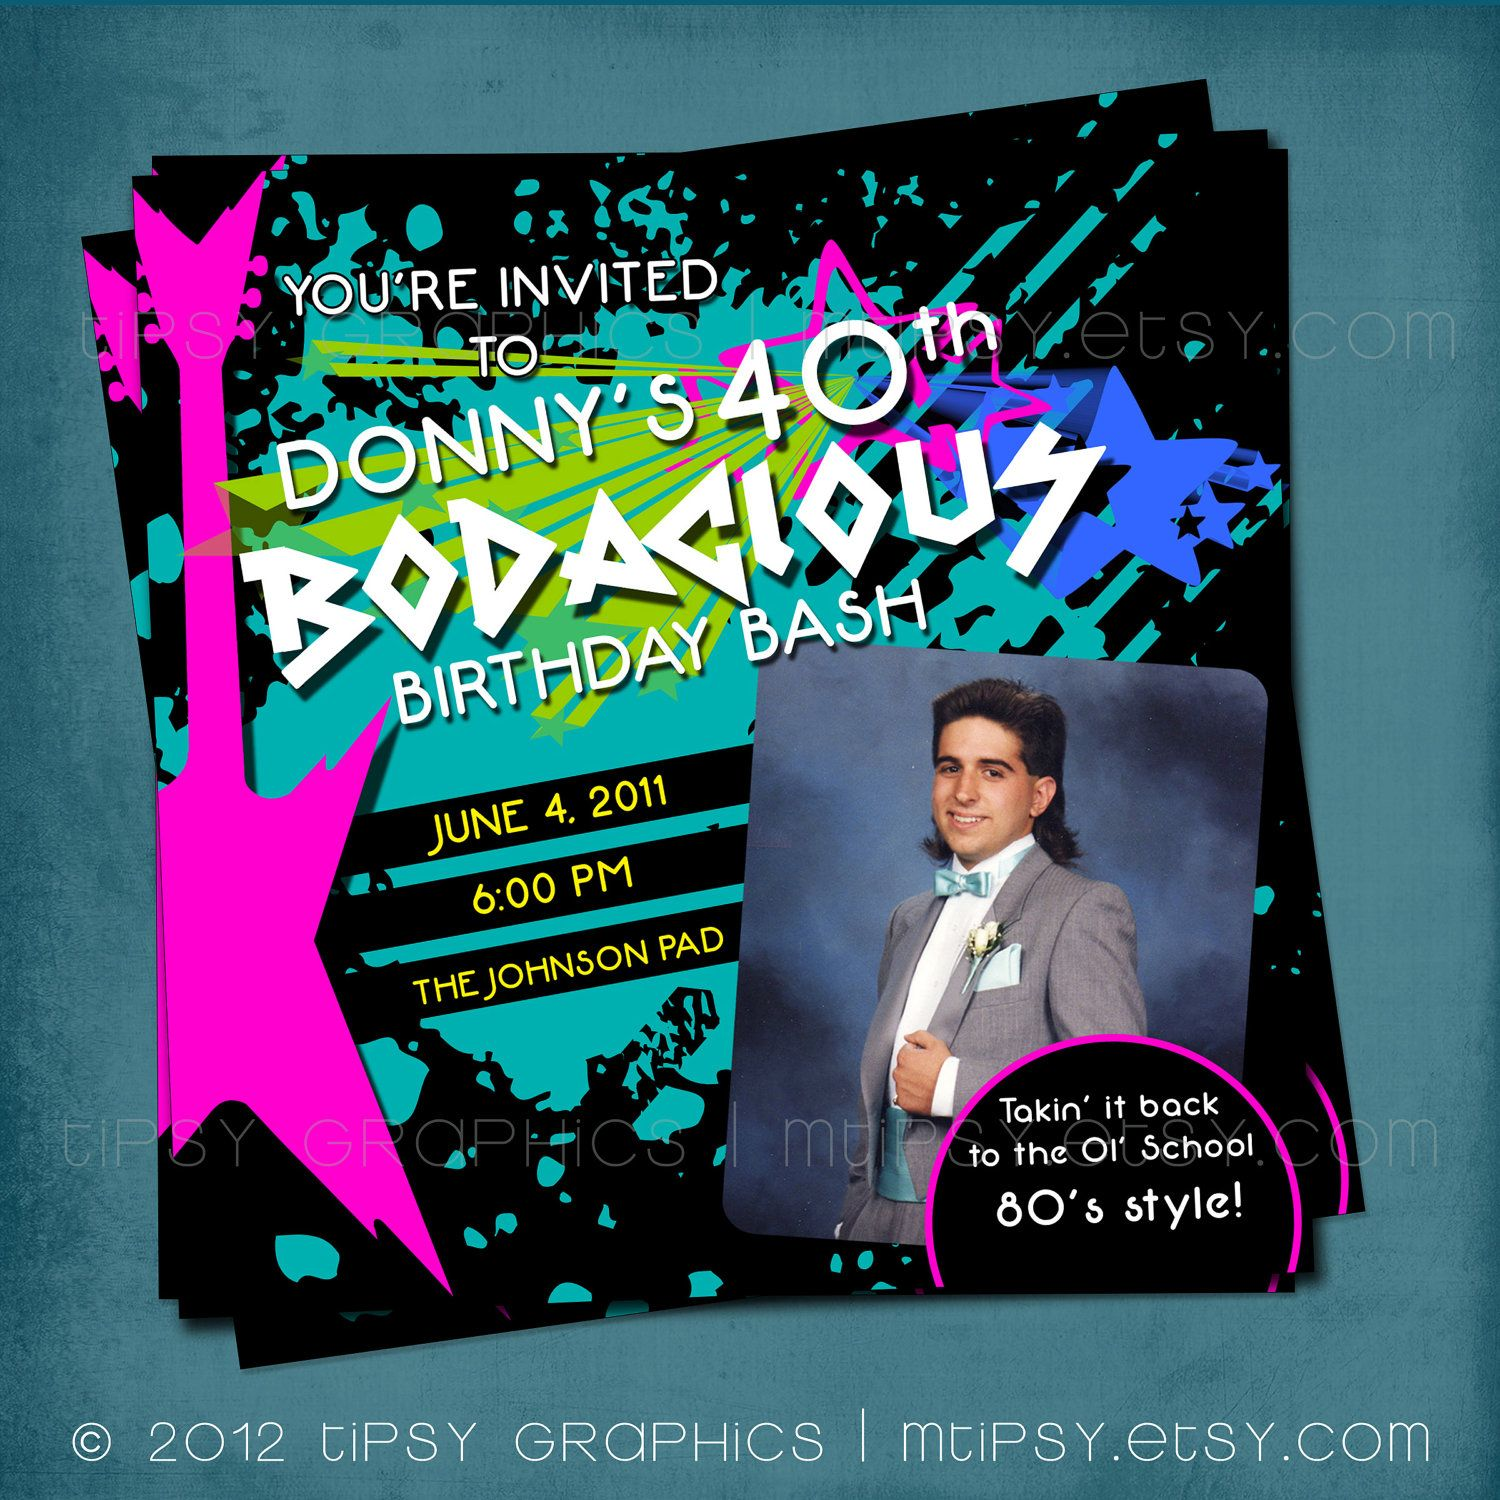 Bodacious Birthday Bash Totally Awesome 80s Party Invite Halfway to